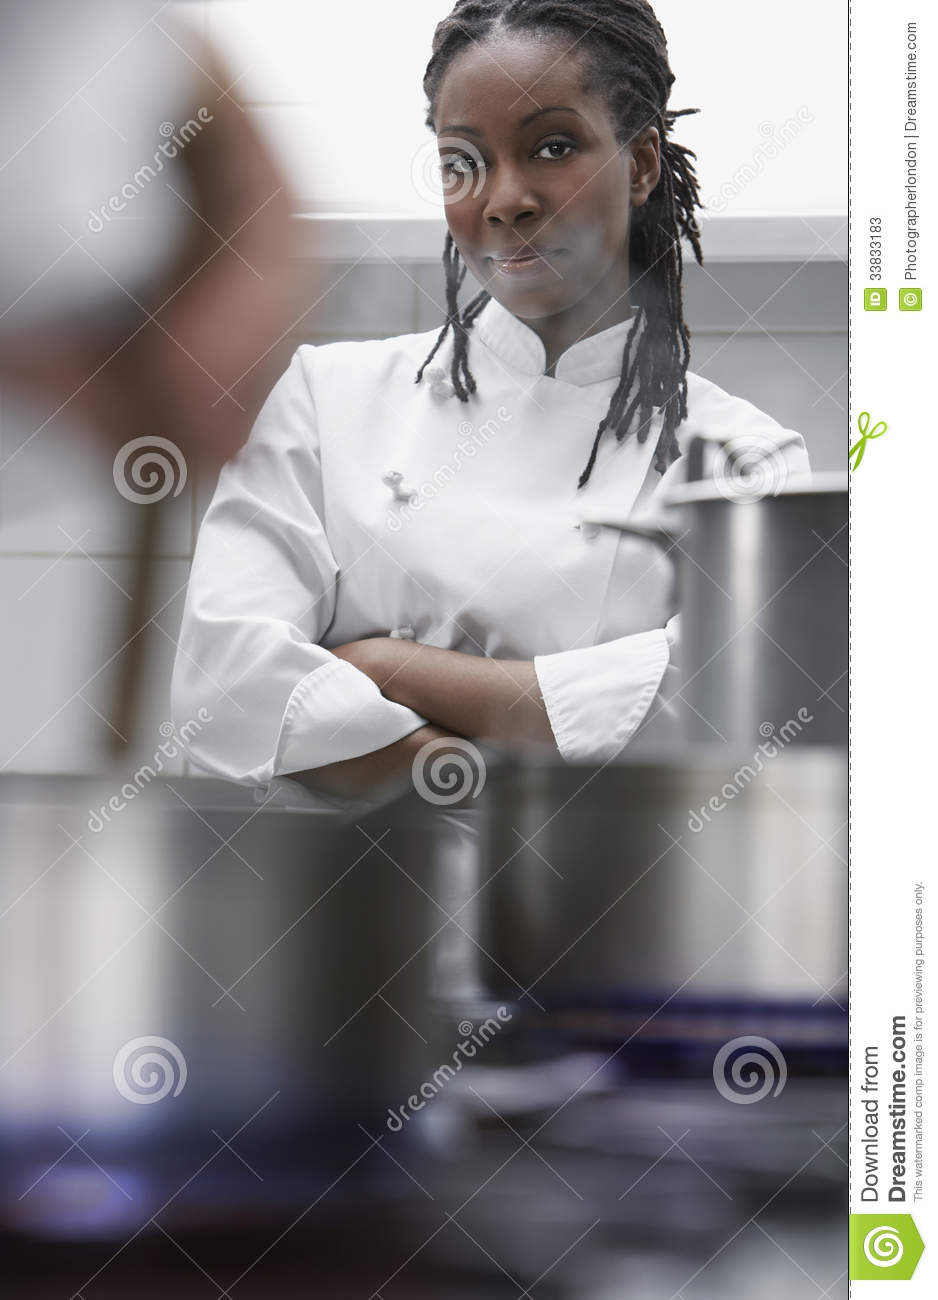 Female Chef In Kitchen Stock Photos Image 33833183